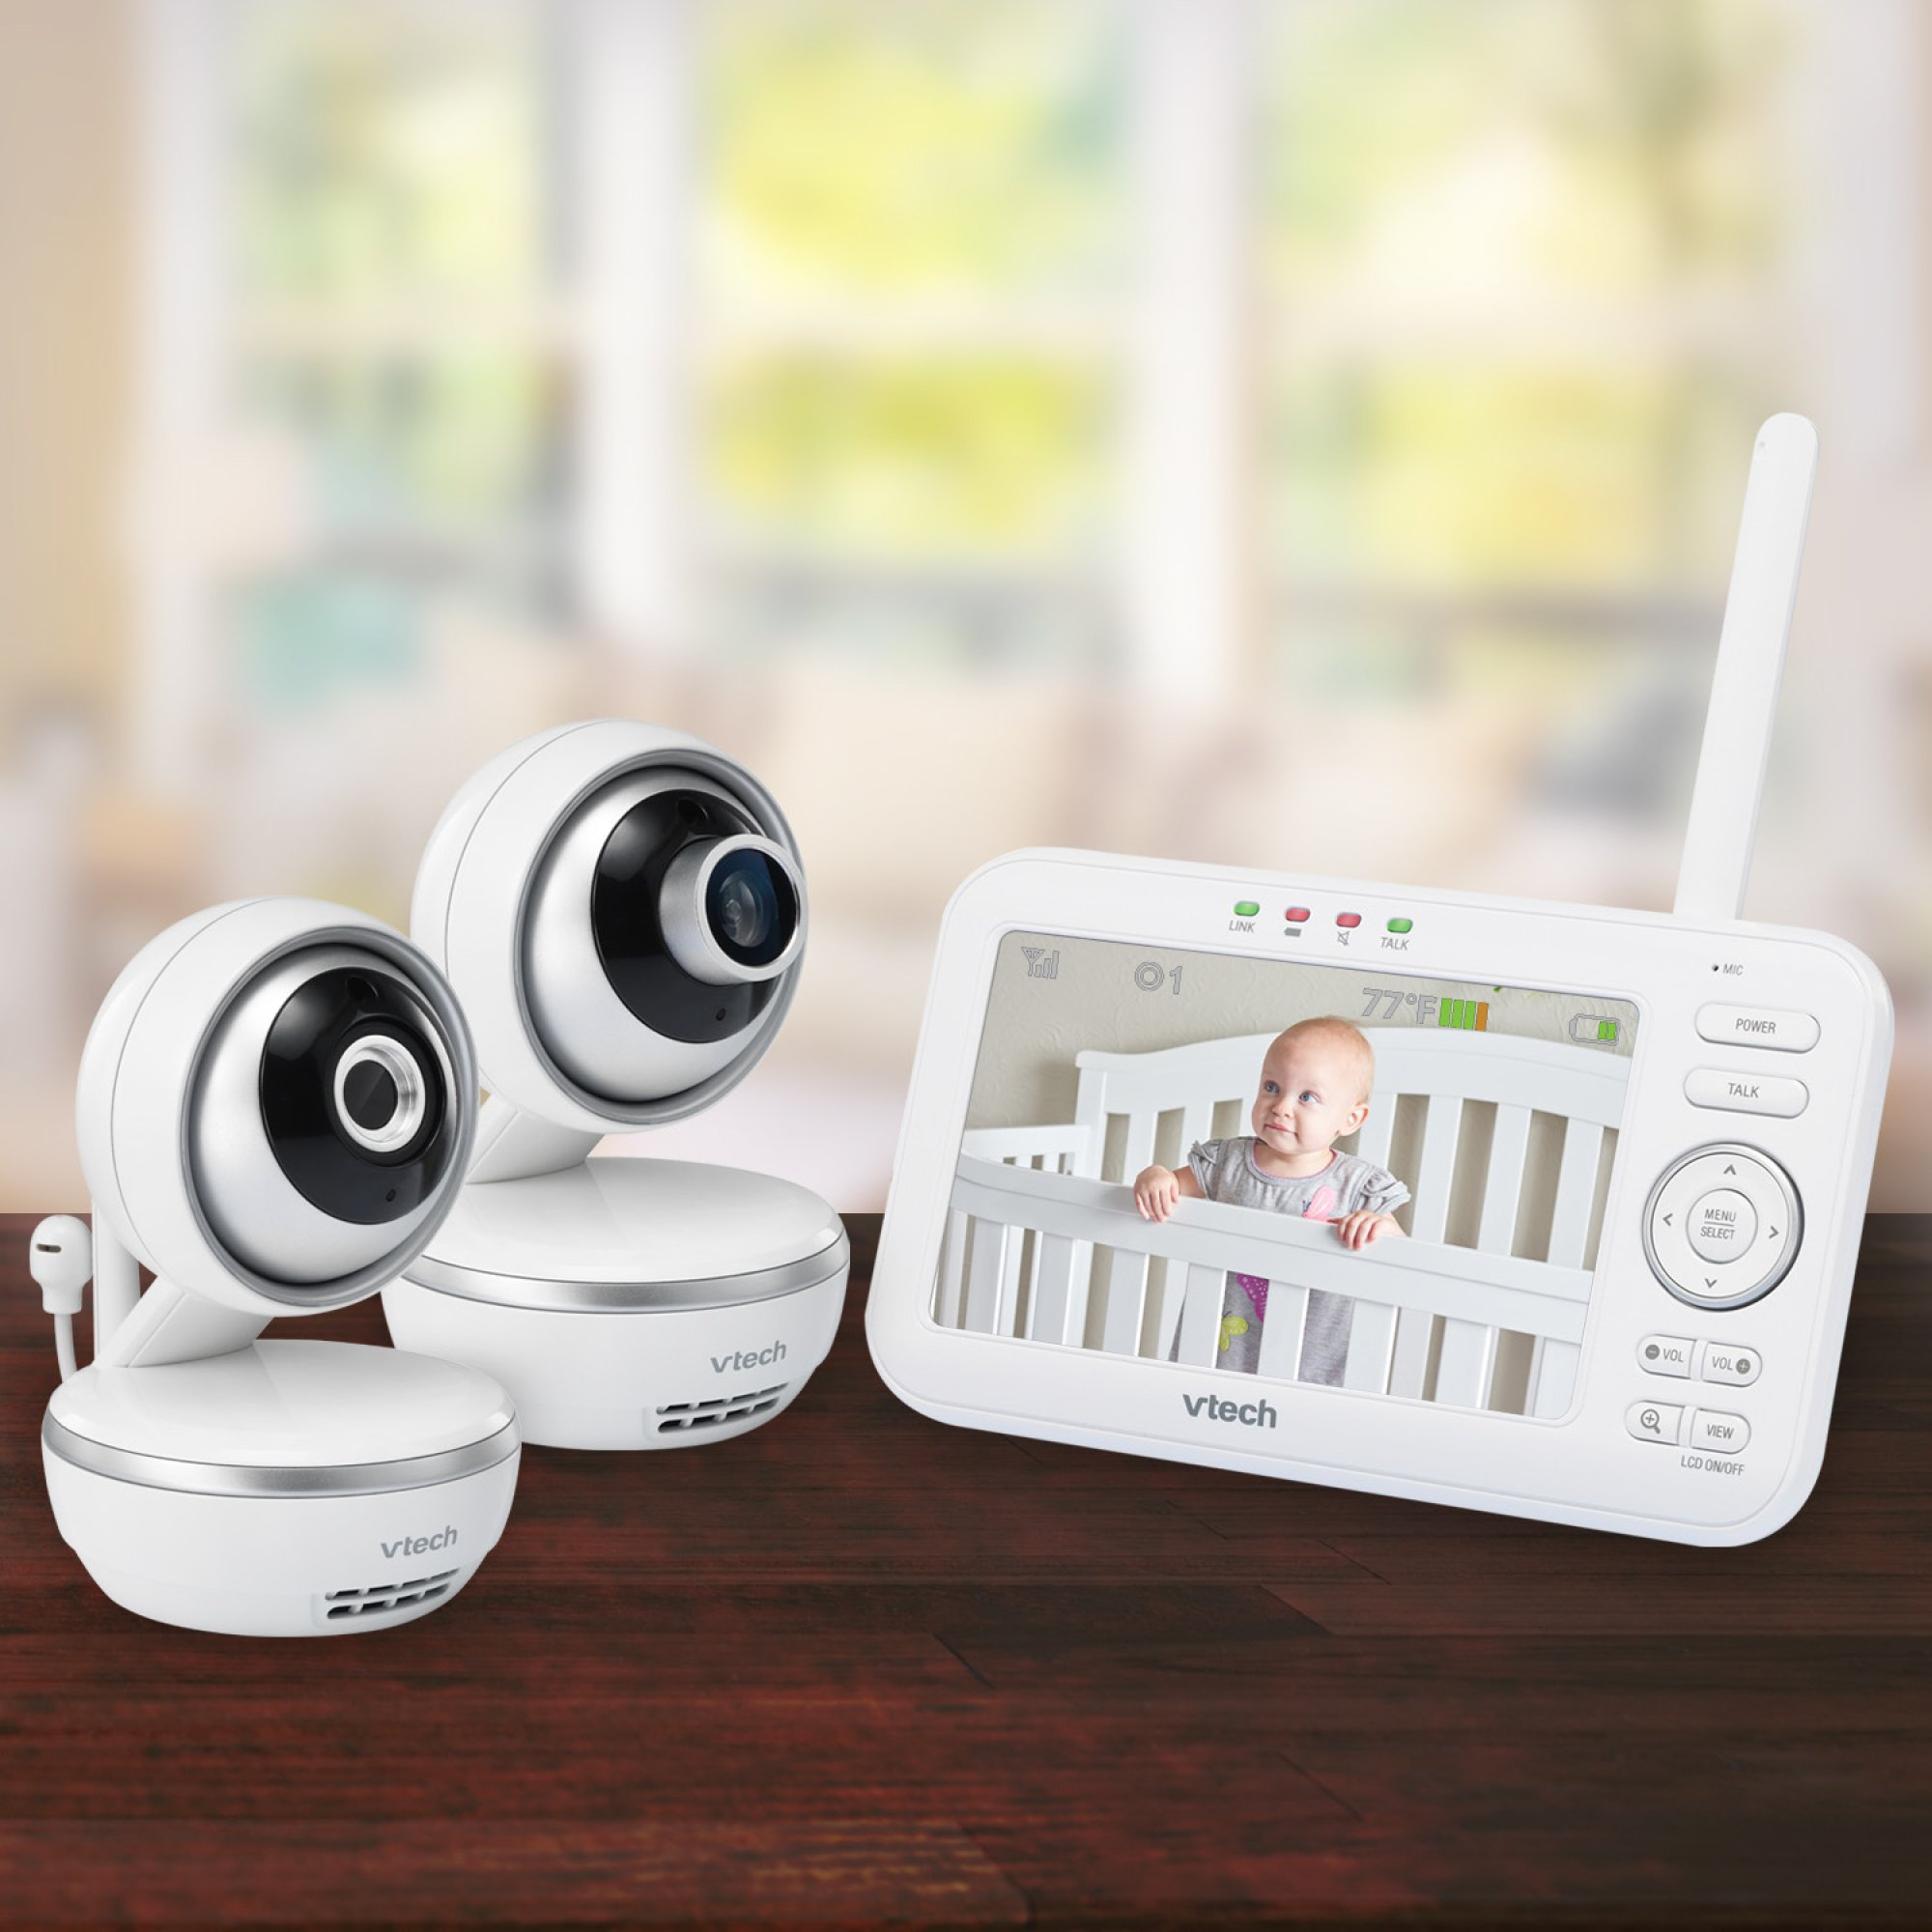 """VTech VM5261-2 5"""" Digital Video Baby Monitor with 2 Pan & Tilt Cameras, Wide-Angle Lens and Standard Lens, White by VTech (Image #6)"""